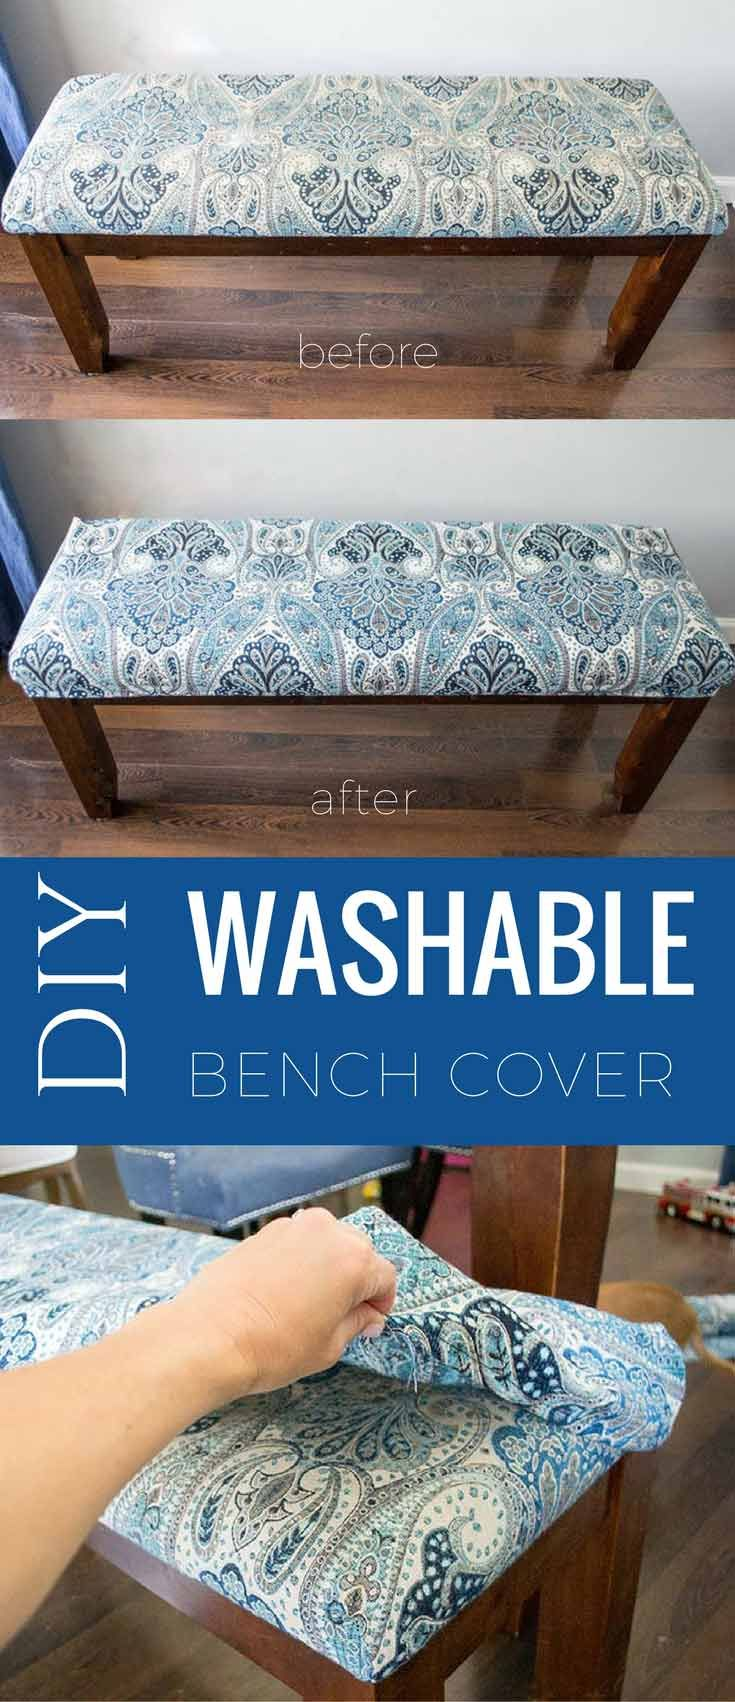 Washable Bench Cover For Dining Table Food Fun Kids Bench Covers Dining Room Bench Diy For Kids